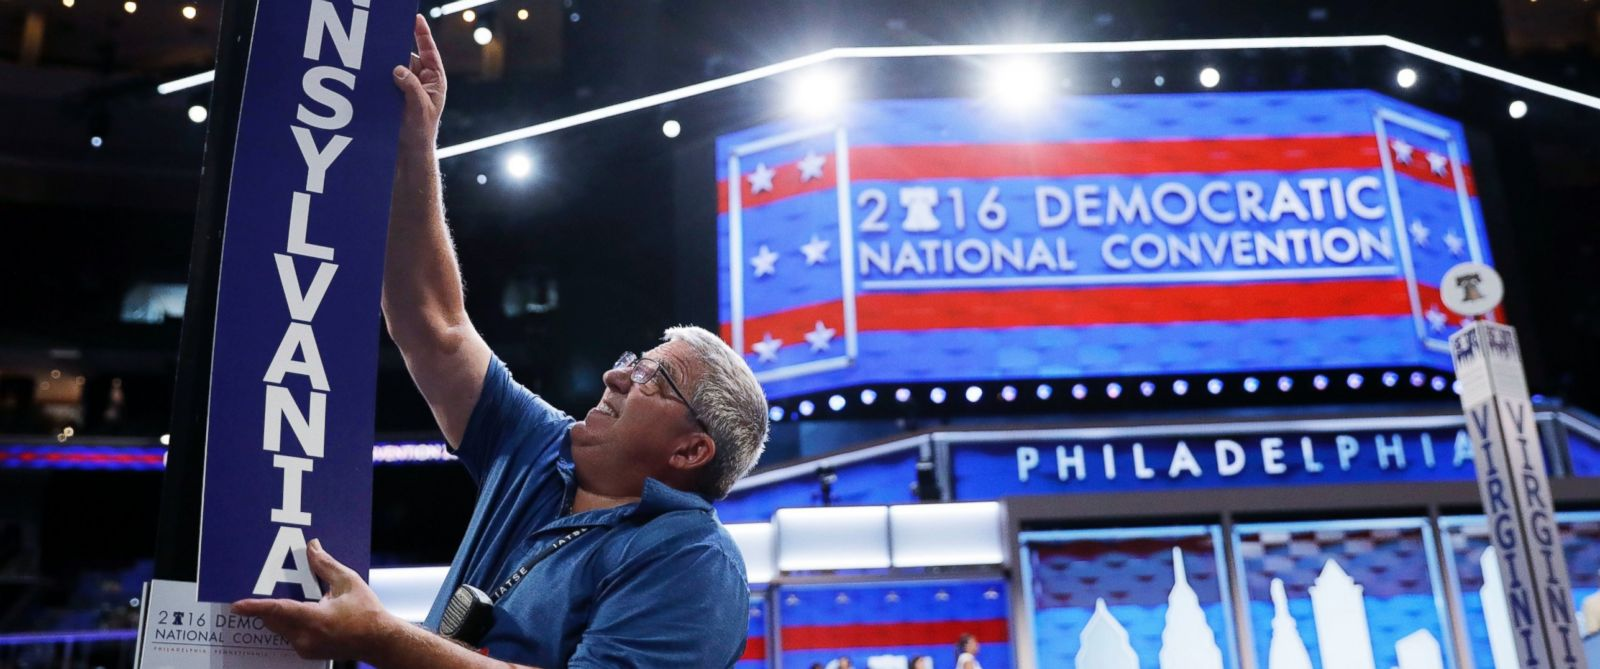 What are they going to discuss tonight on the democratic national convention?